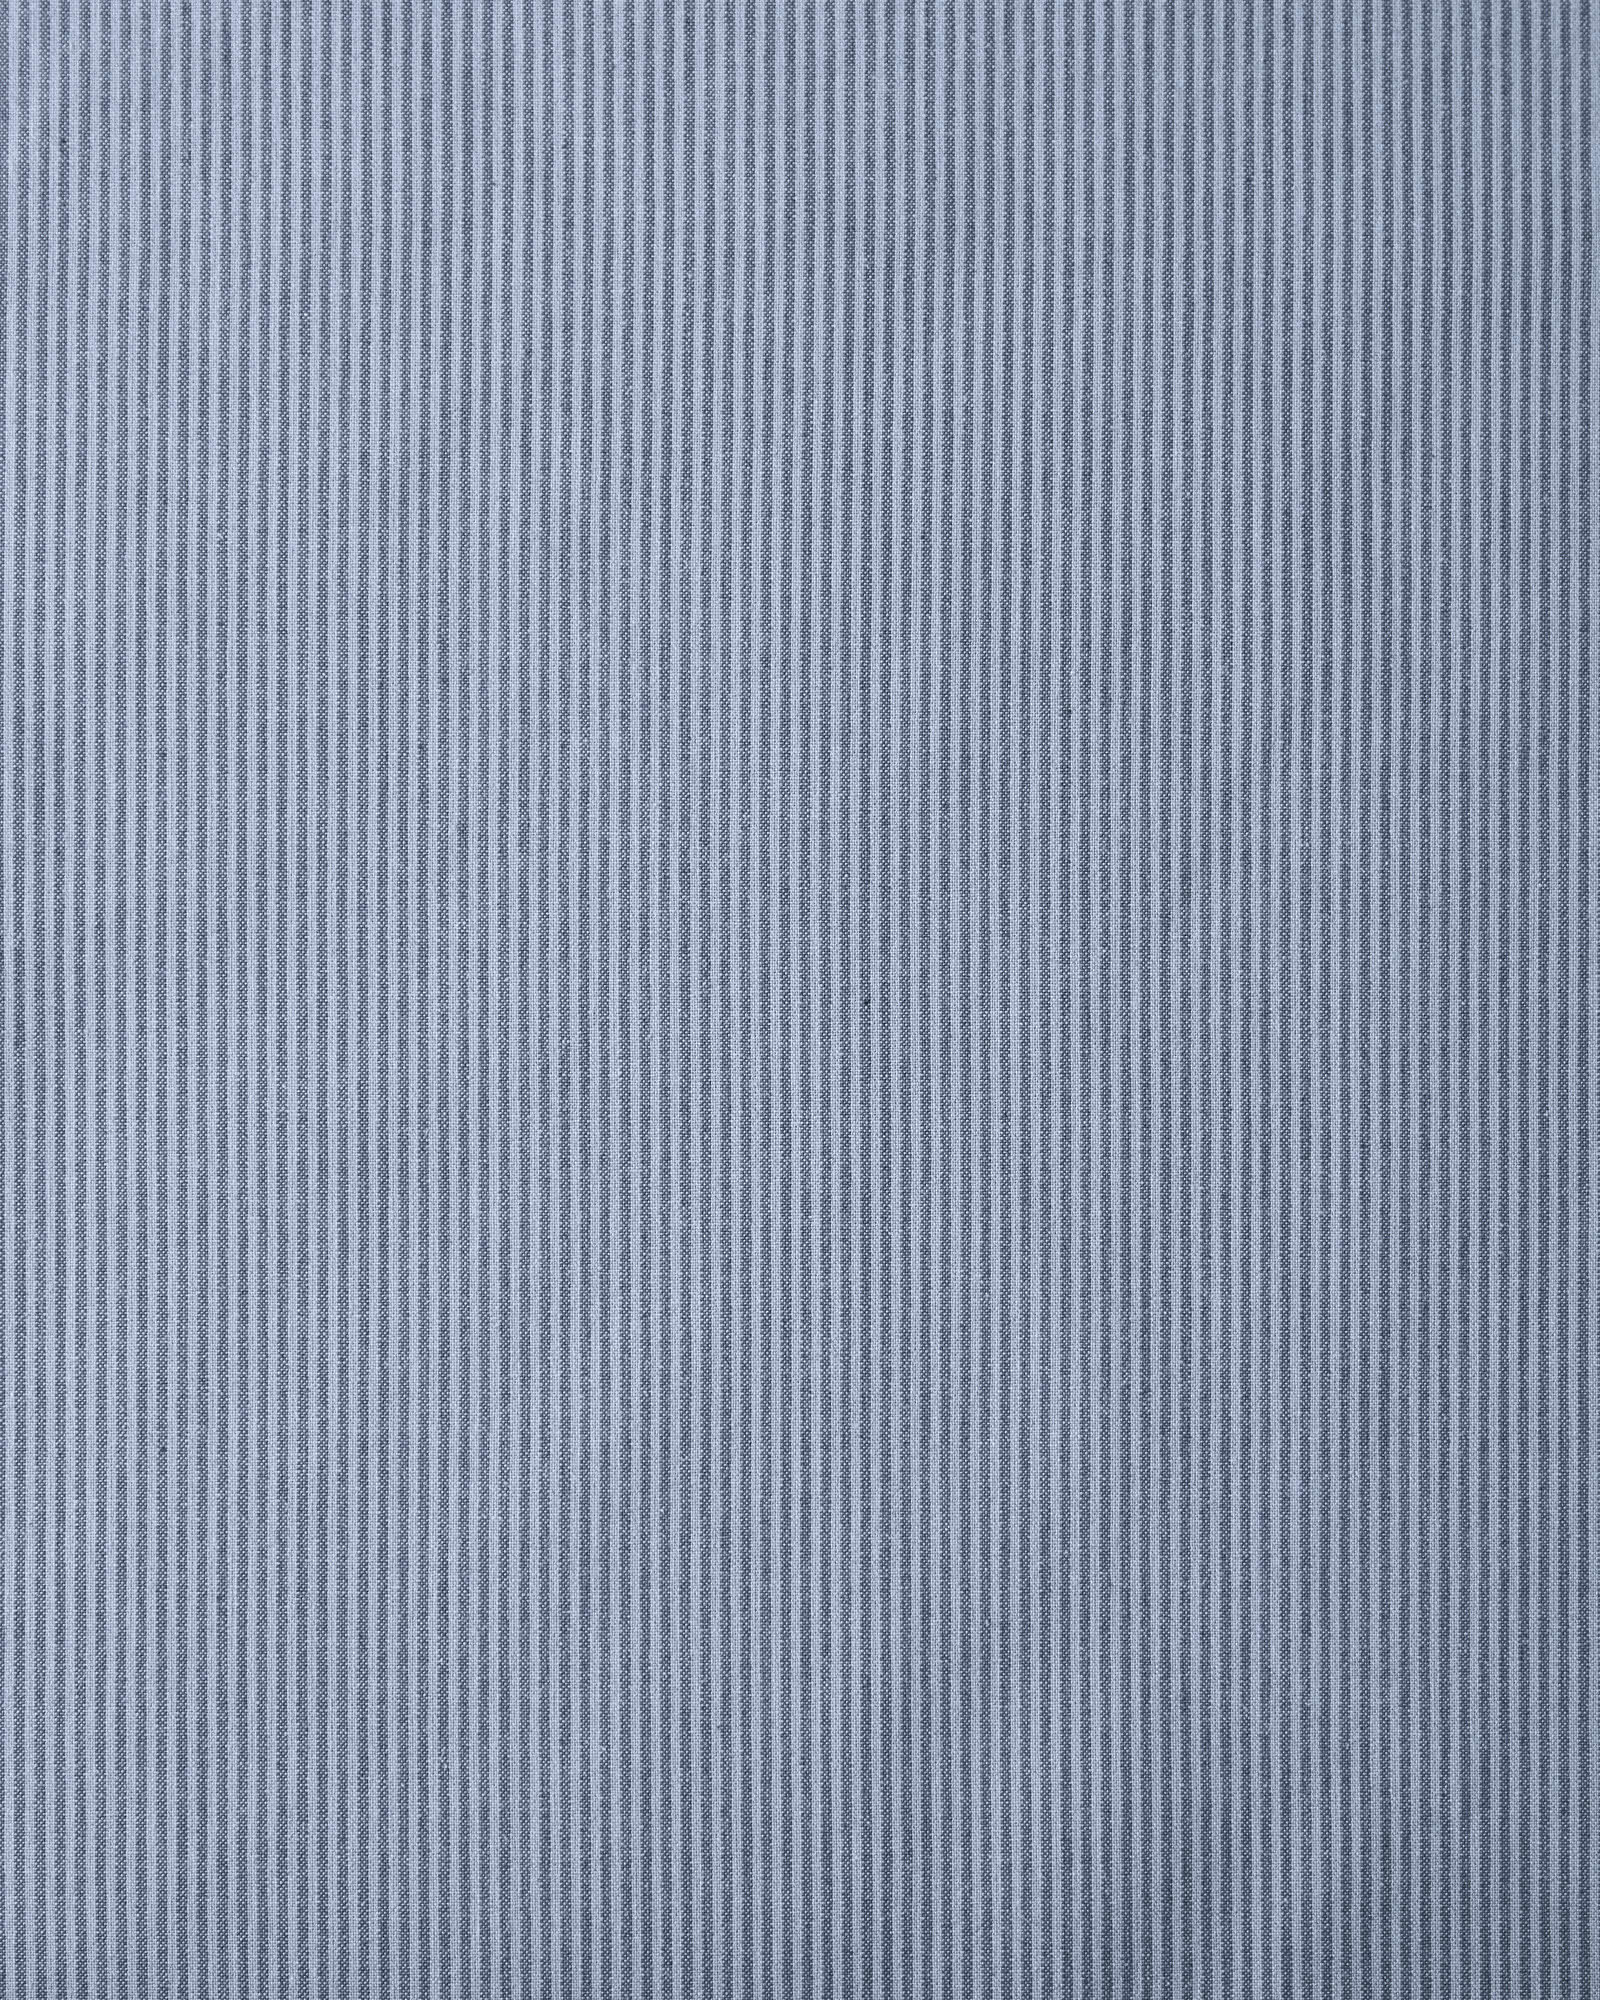 Pinstripe Cotton Fabric